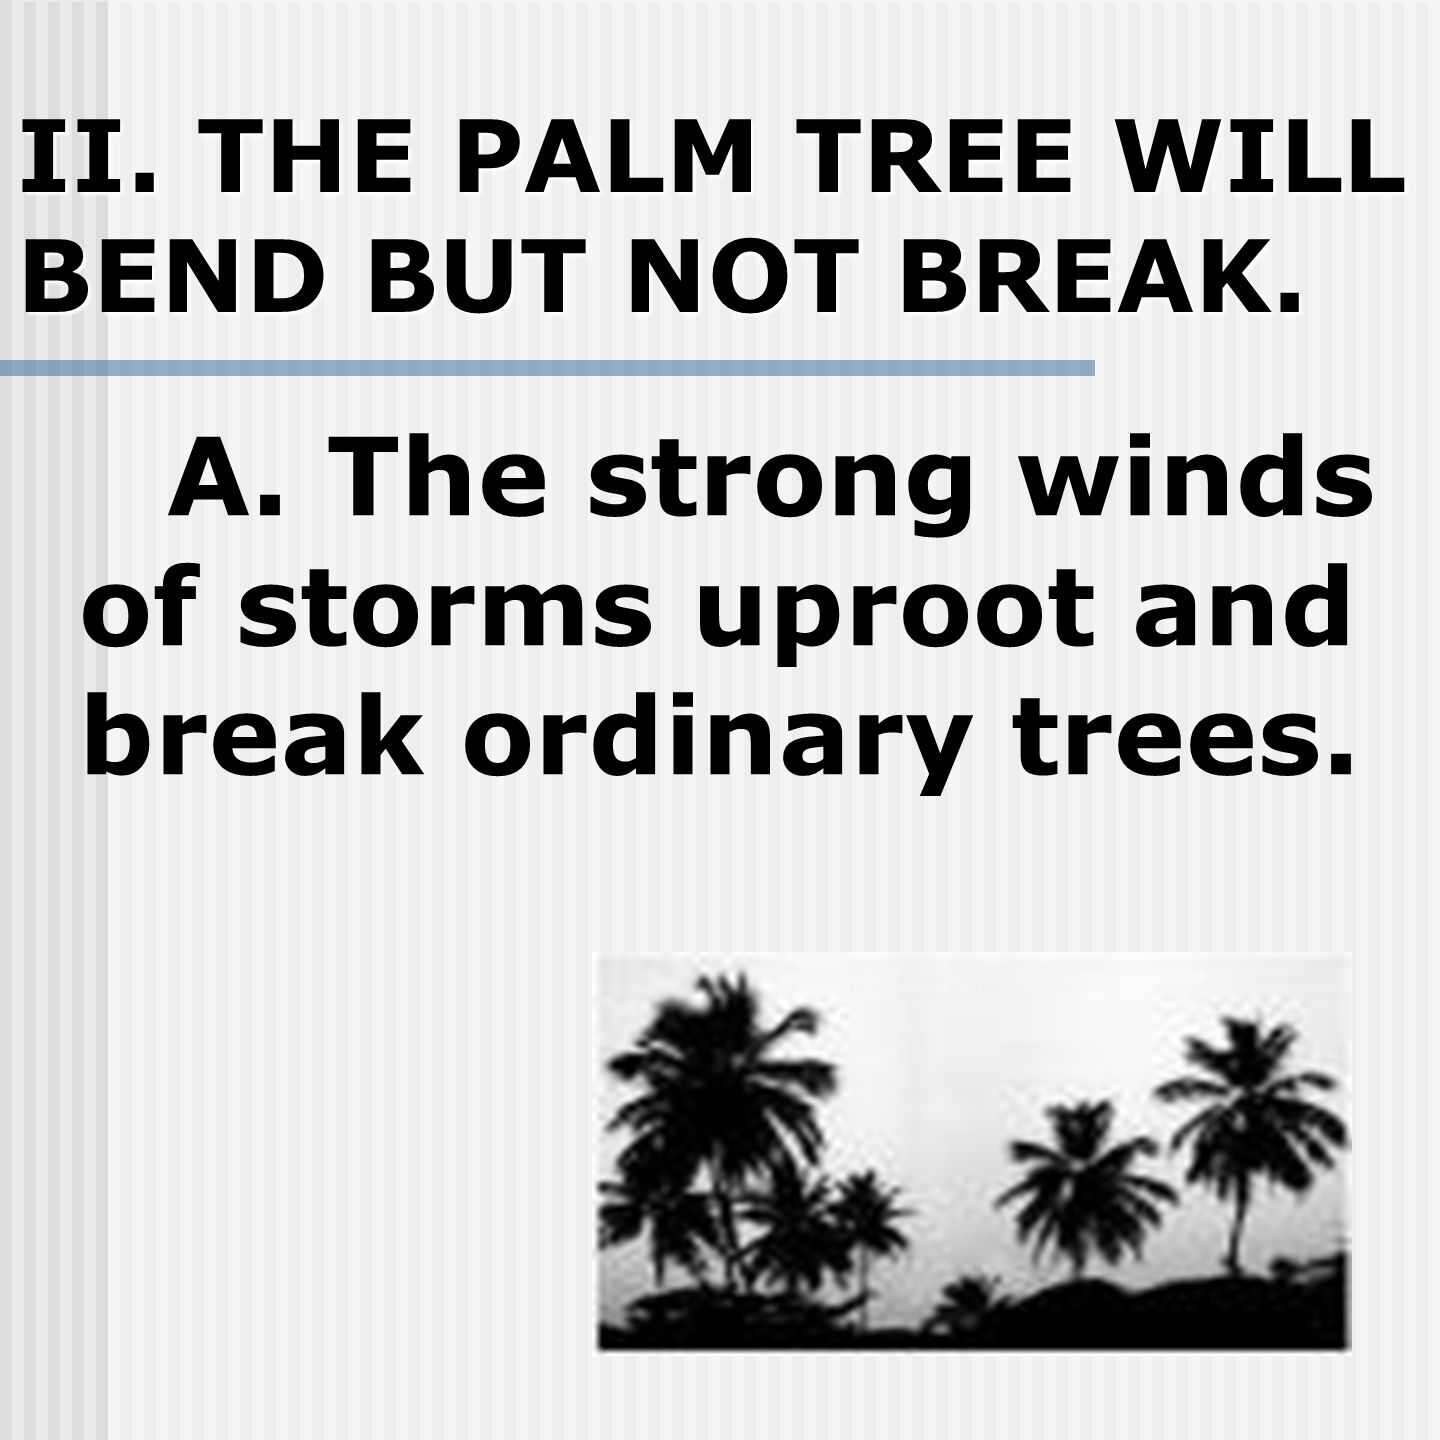 II. THE PALM TREE WILL BEND BUT NOT BREAK. A.